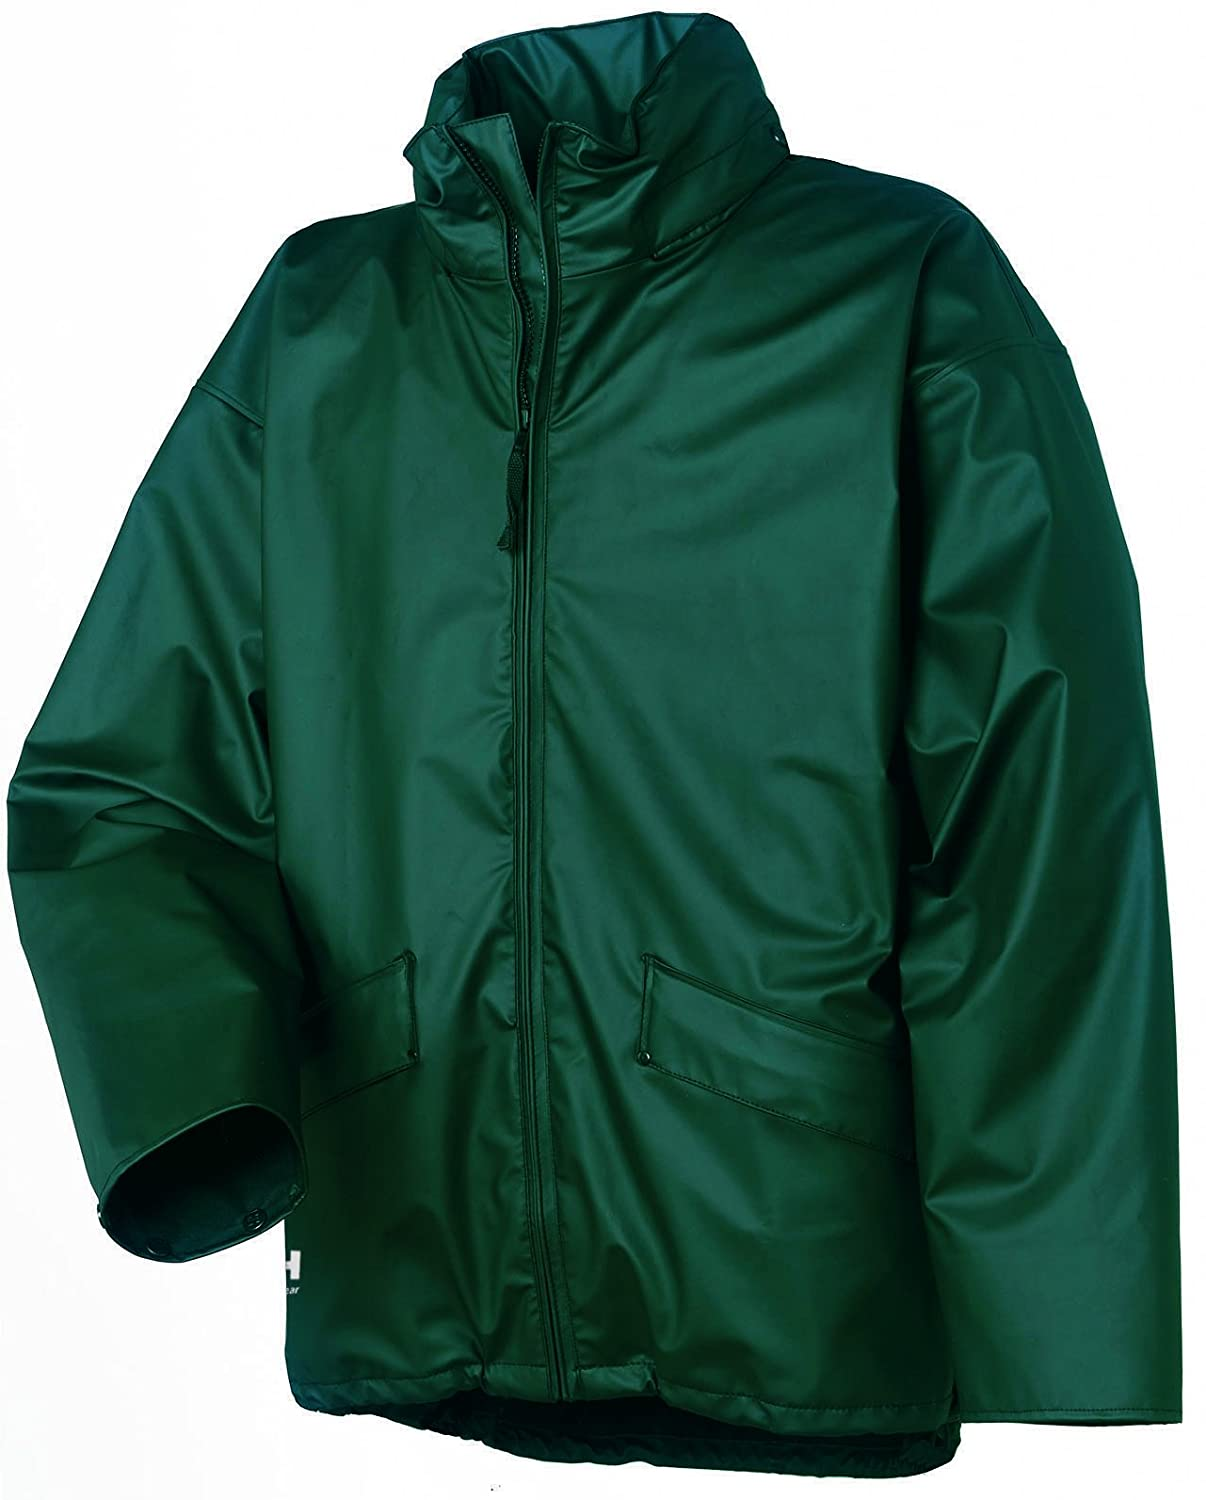 'Helly Hansen' VOSS 'WATERPROOF JACKET Helly-Hansen 70180-290